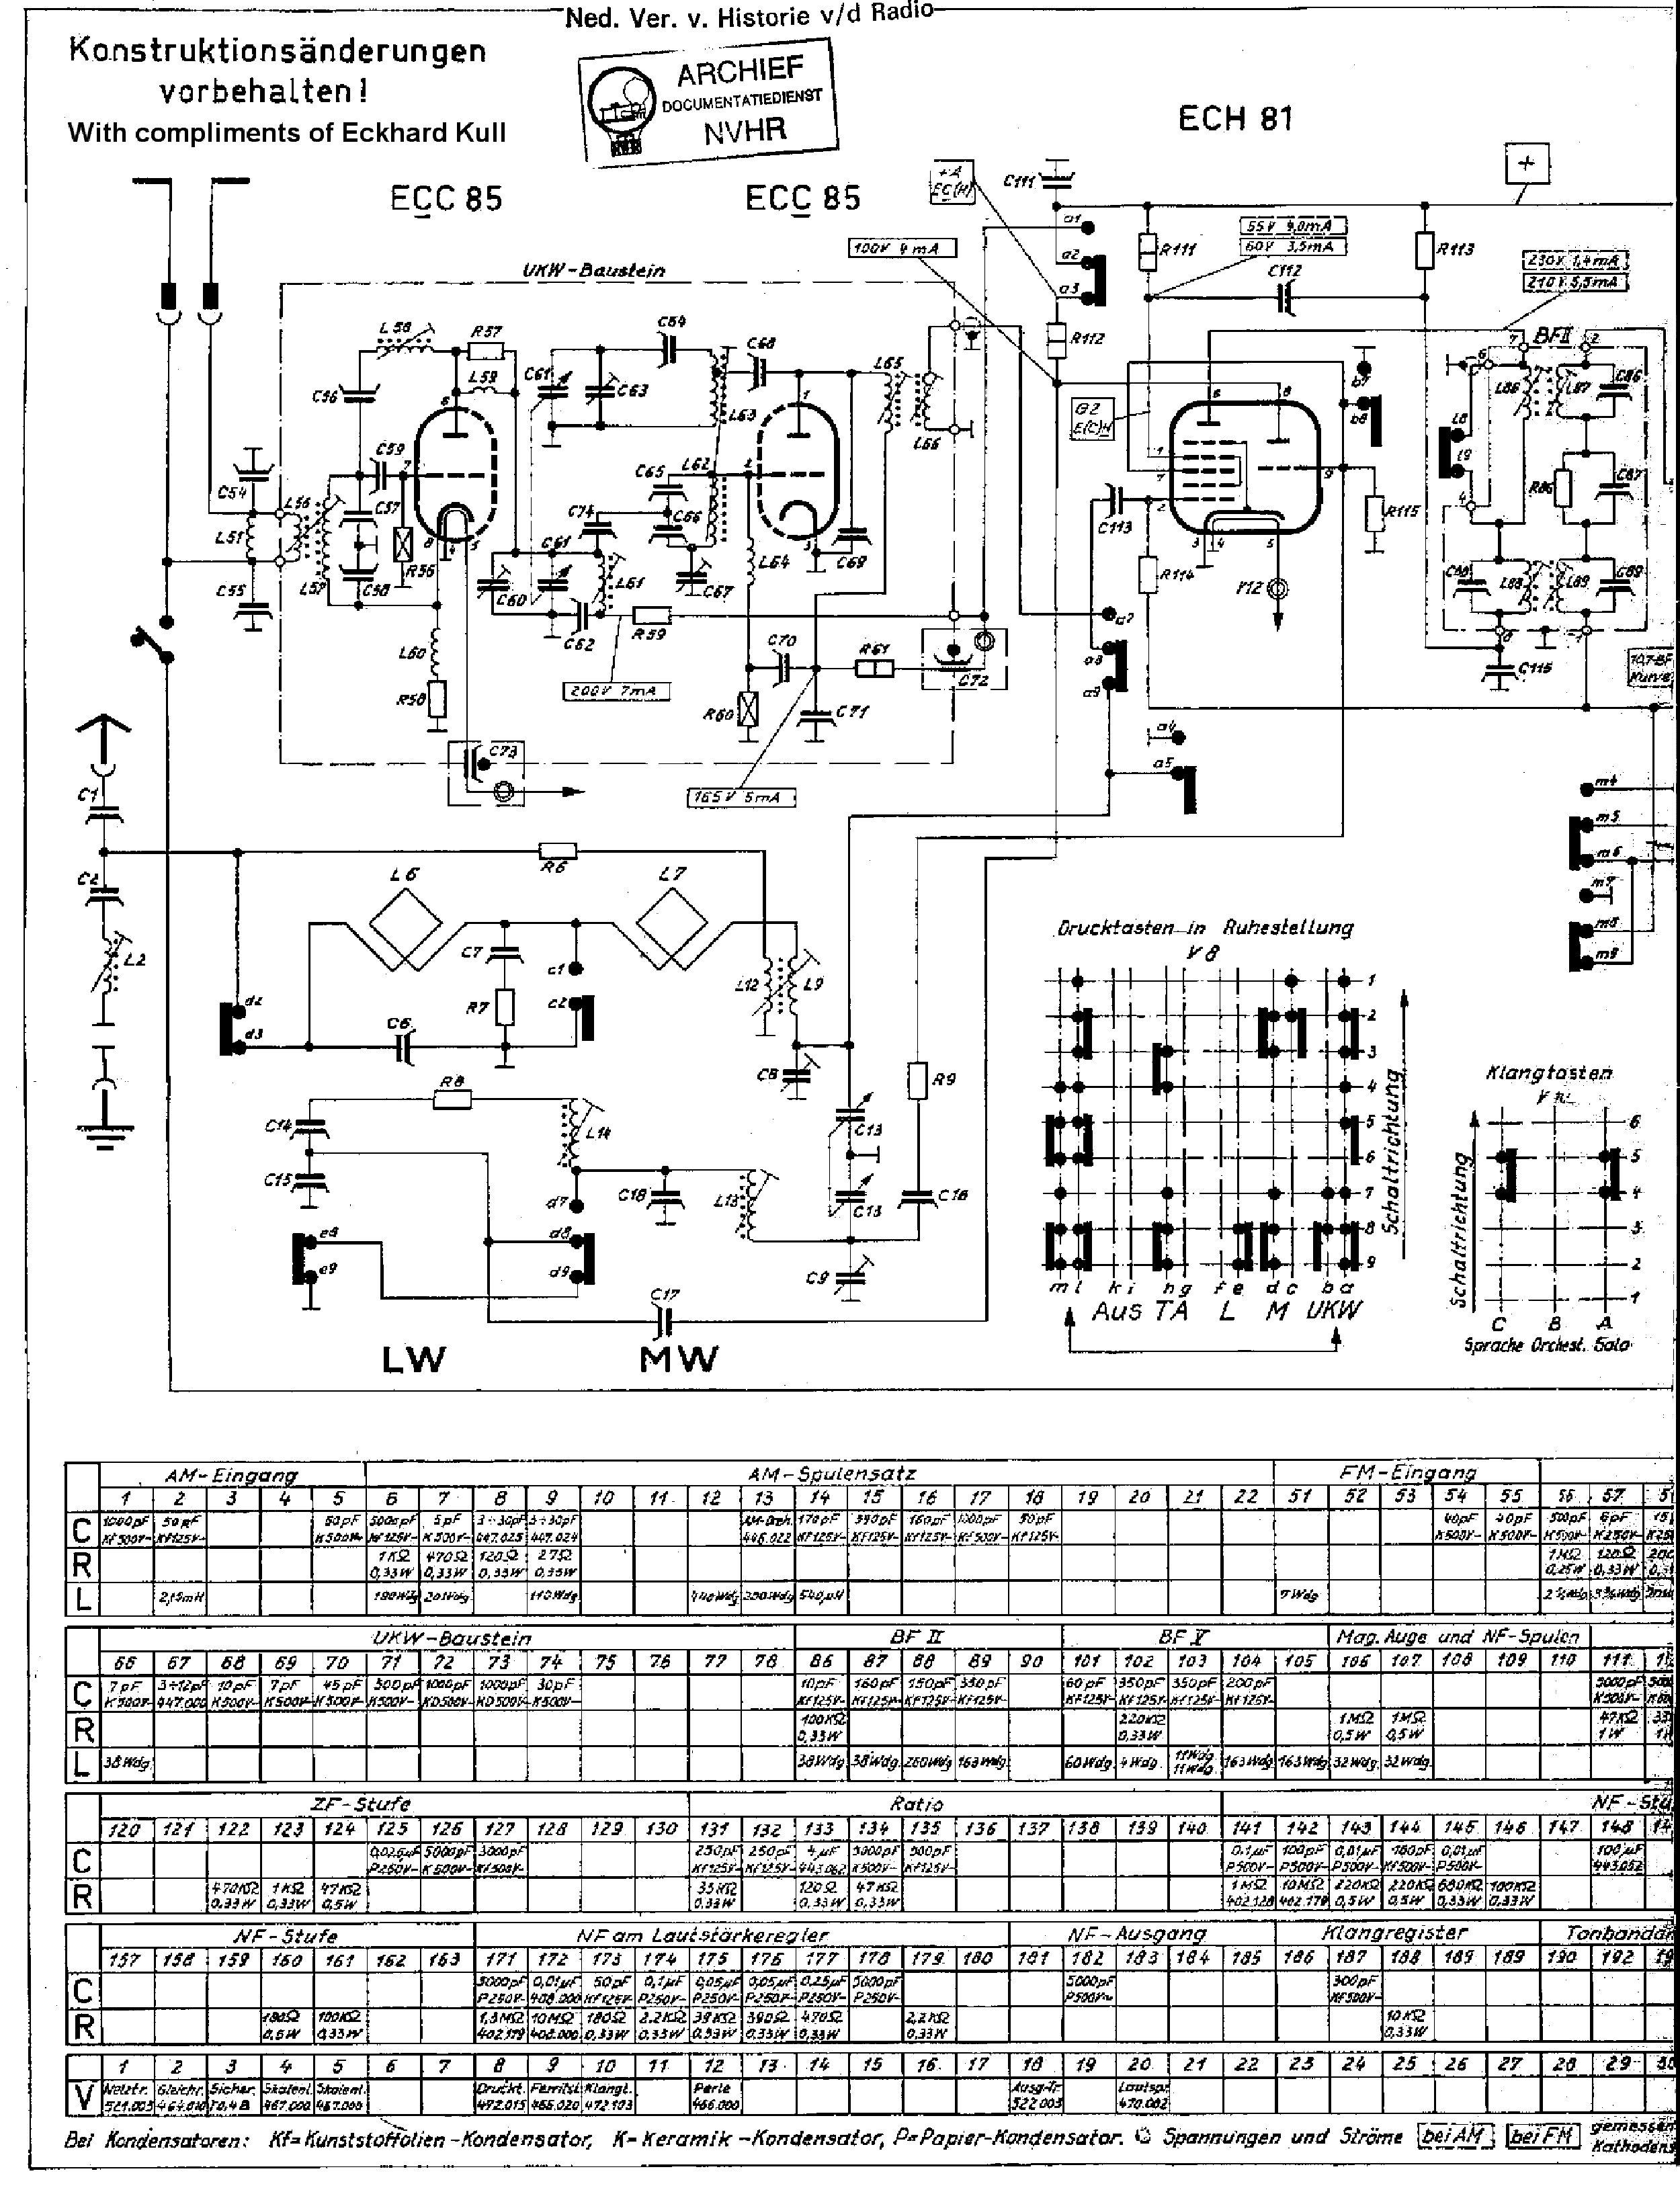 Schematic For Nordmende Elektra Wire Center E39 Fsu Wiring Diagram 59 613 Am Fm Receiver Sch Service Manual Download Rh Elektrotanya Com Fw